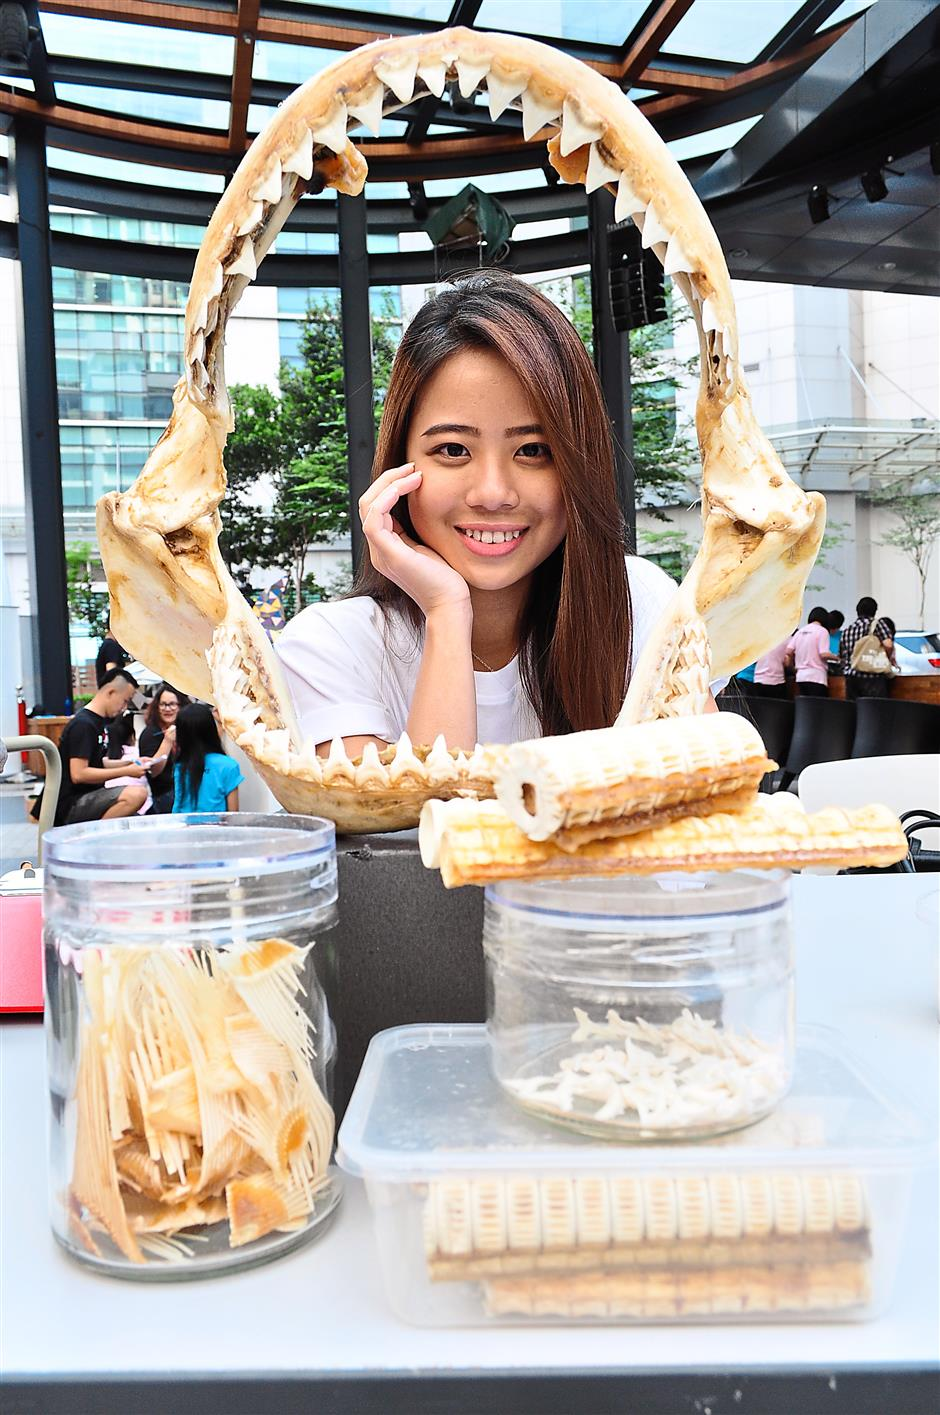 Not for consumption: Ivy Yap from Aquaria showing shark parts, which include the (clockwise) jaw, cartilage, teeth and fins.